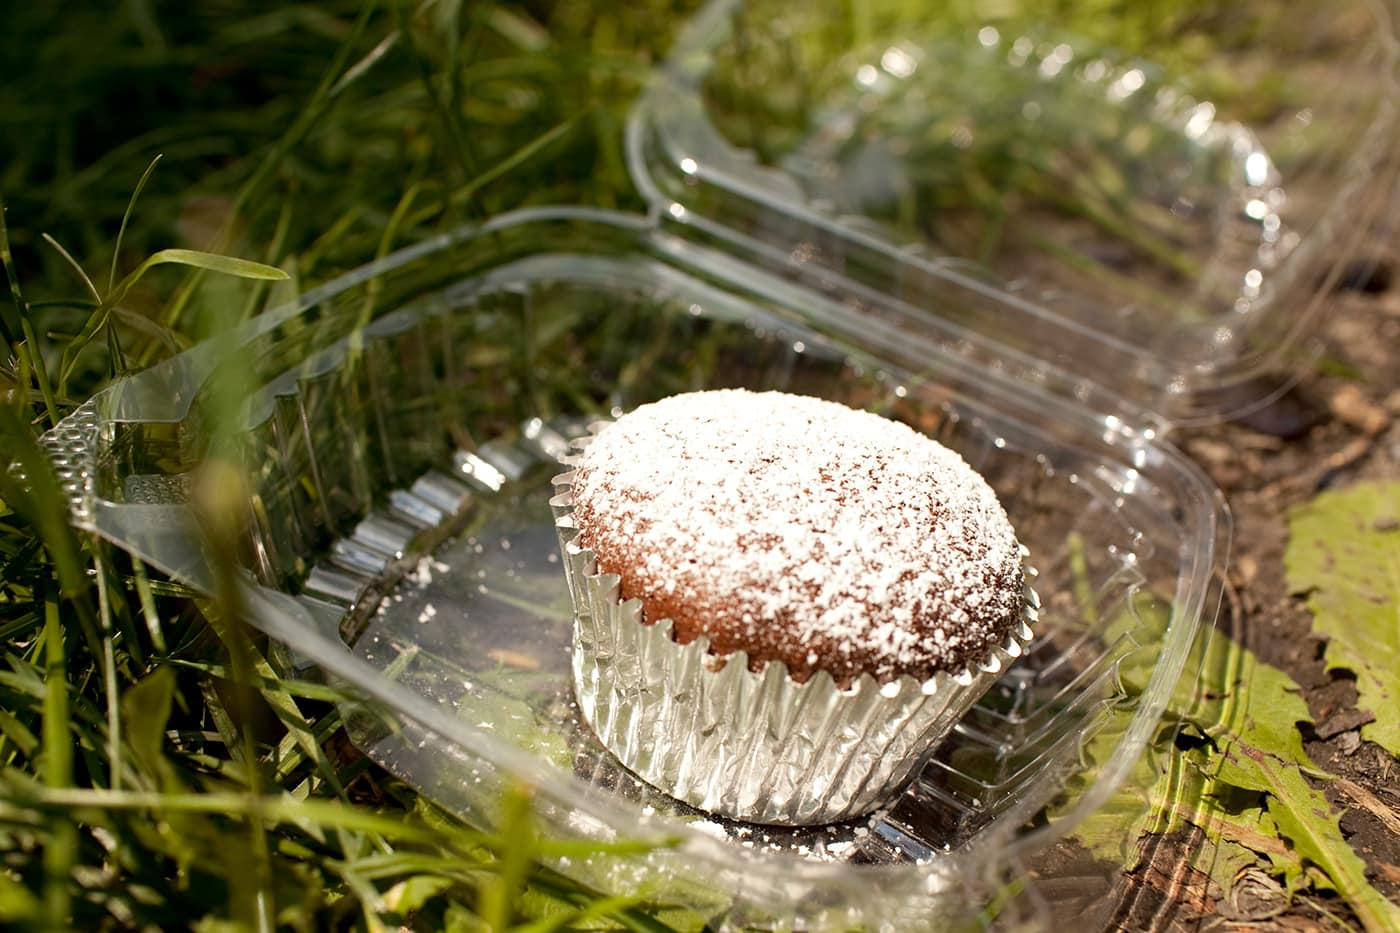 Mashed potato filled chocolate cupcake from Polo Café & Catering at Taste of Chicago